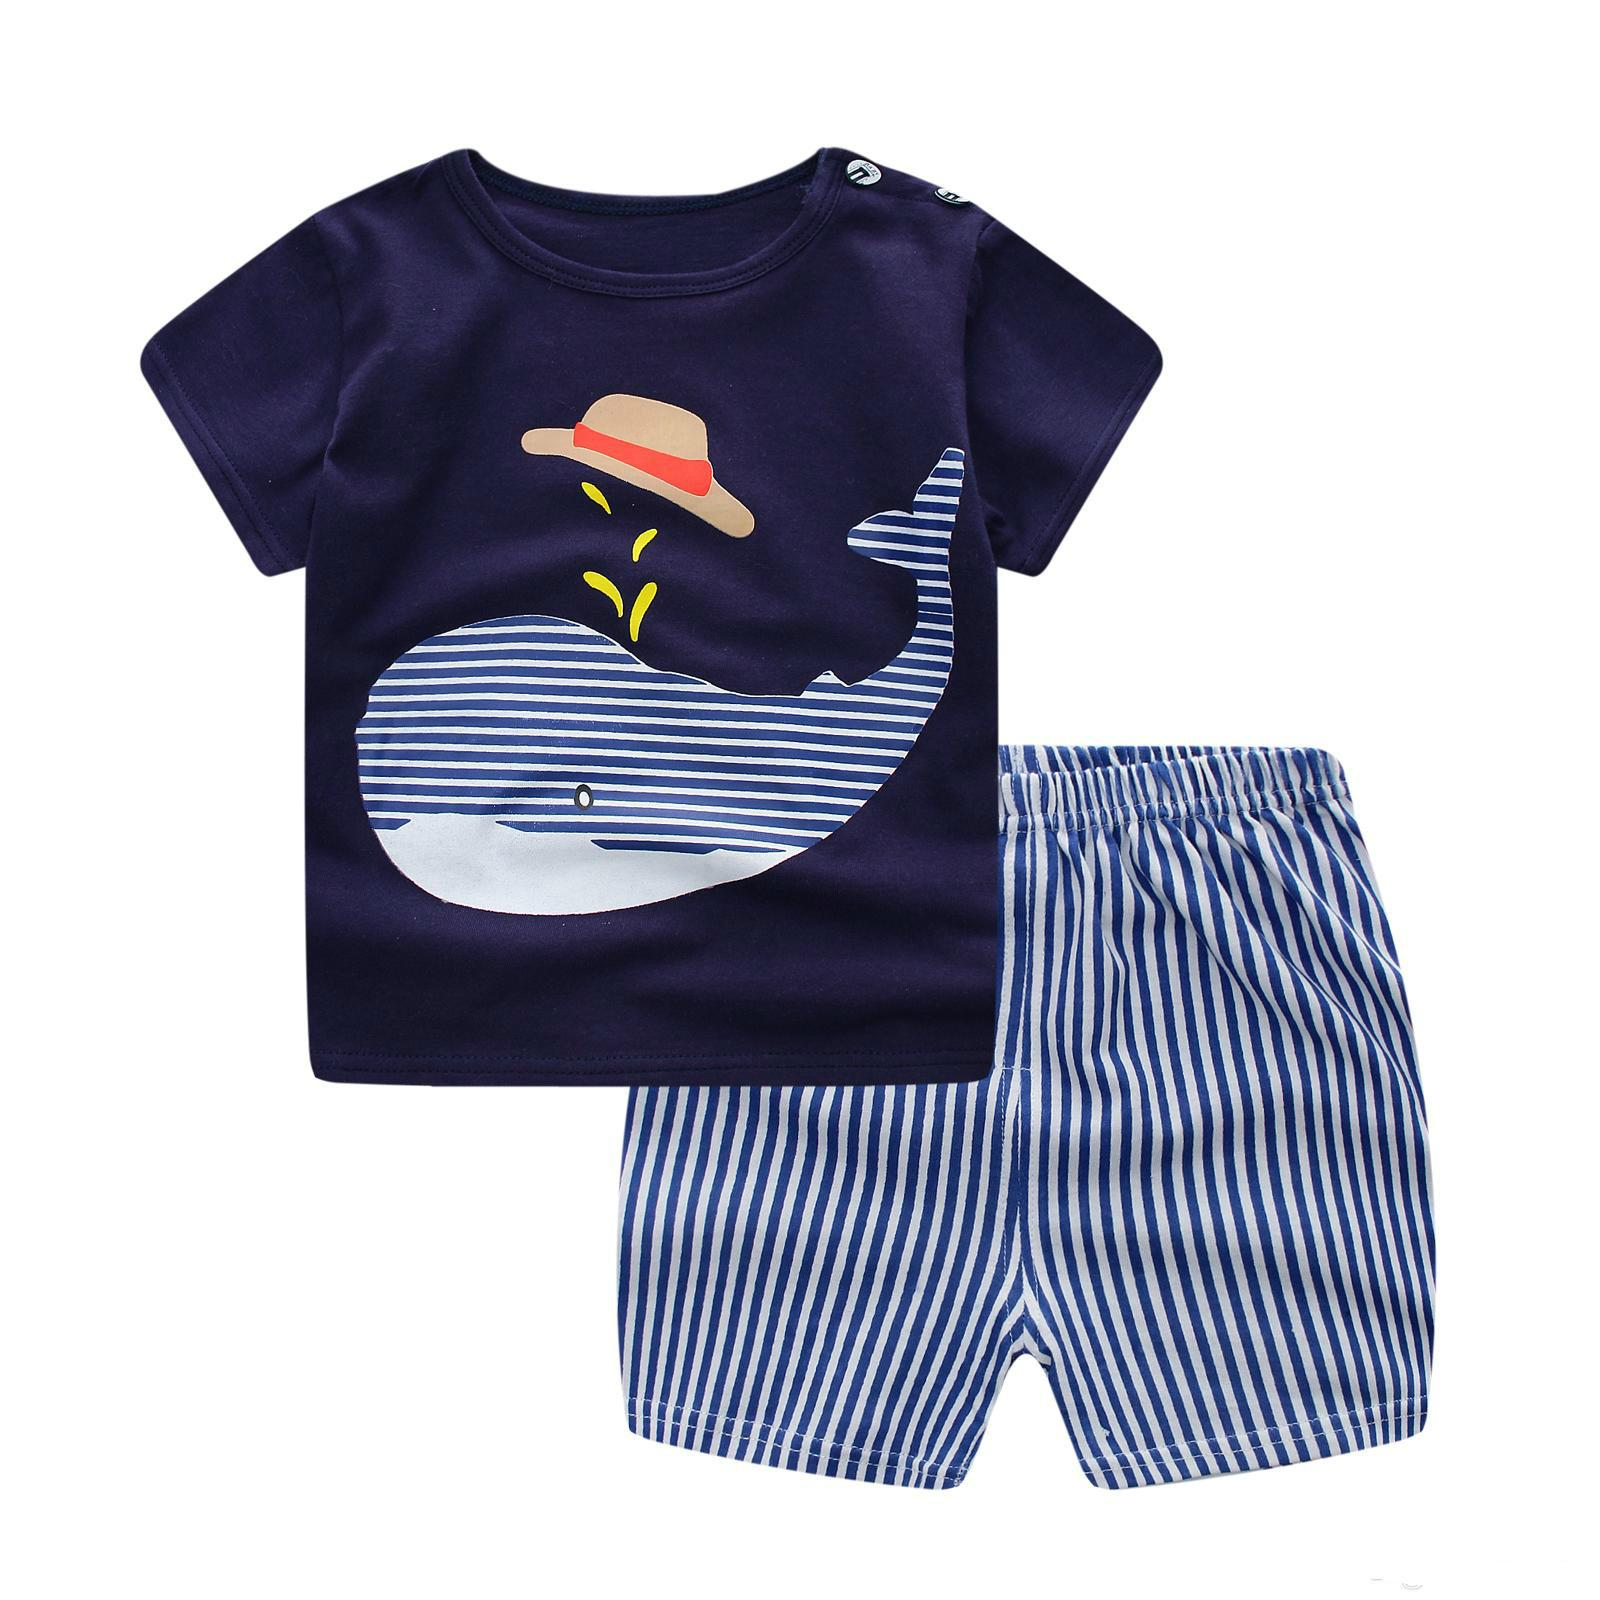 34e00204 Baby Boy Clothes Summer New Born Baby Boy Clothes Set Shirt + Pants Infant  Clothes Set Cartoon Whale Tees